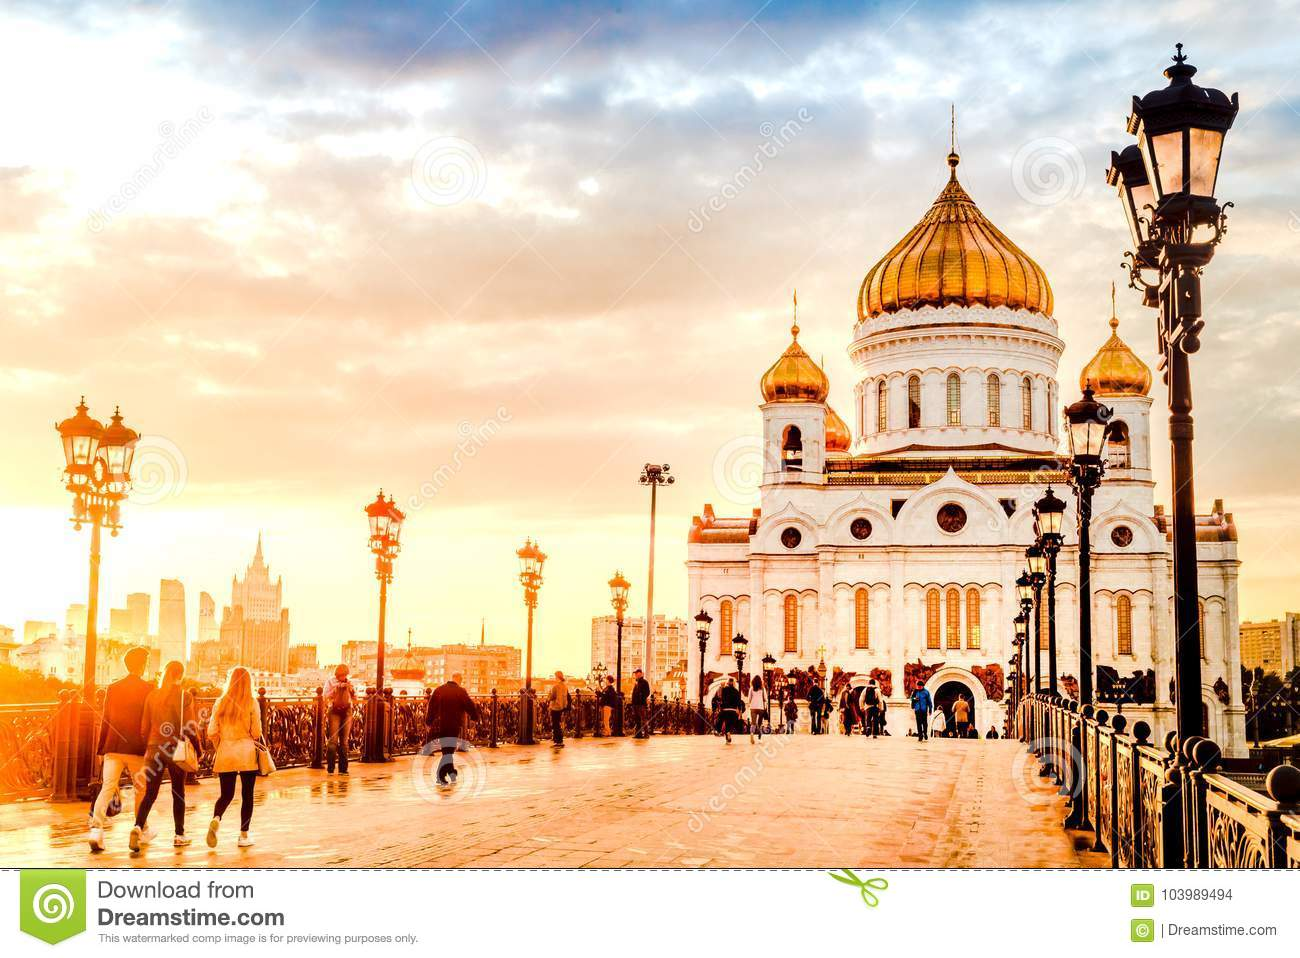 Moscow Russia - September 14, 2017 Evening mood of a sunset on the Patriarchal bridge near Christ the Savior Cathedral.